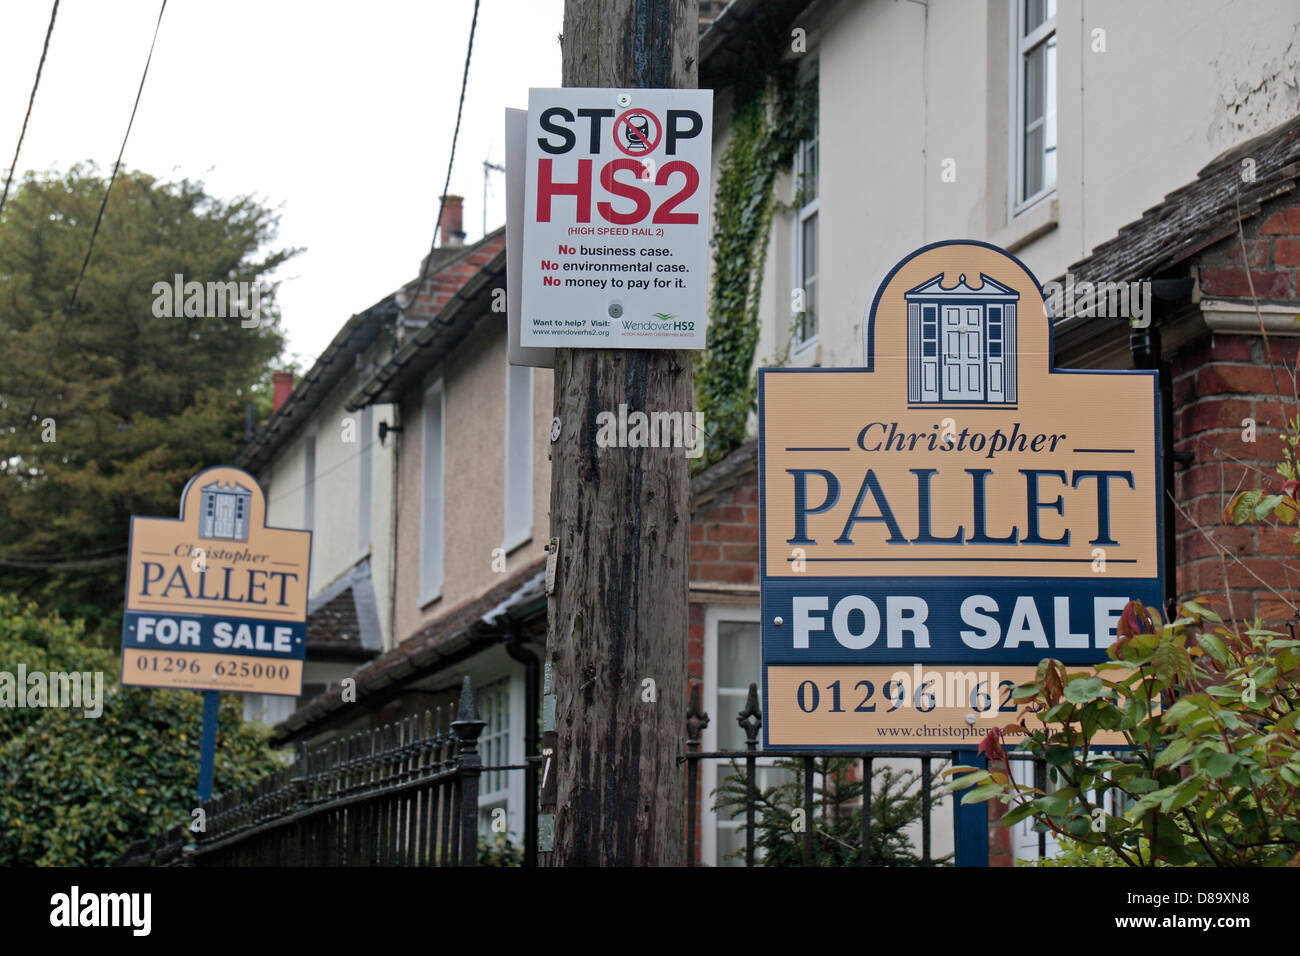 A 'Stop HS2' poster on a telephone pole close to two house 'for sale' signs, in Wendover, Buckinghamshire, - Stock Image